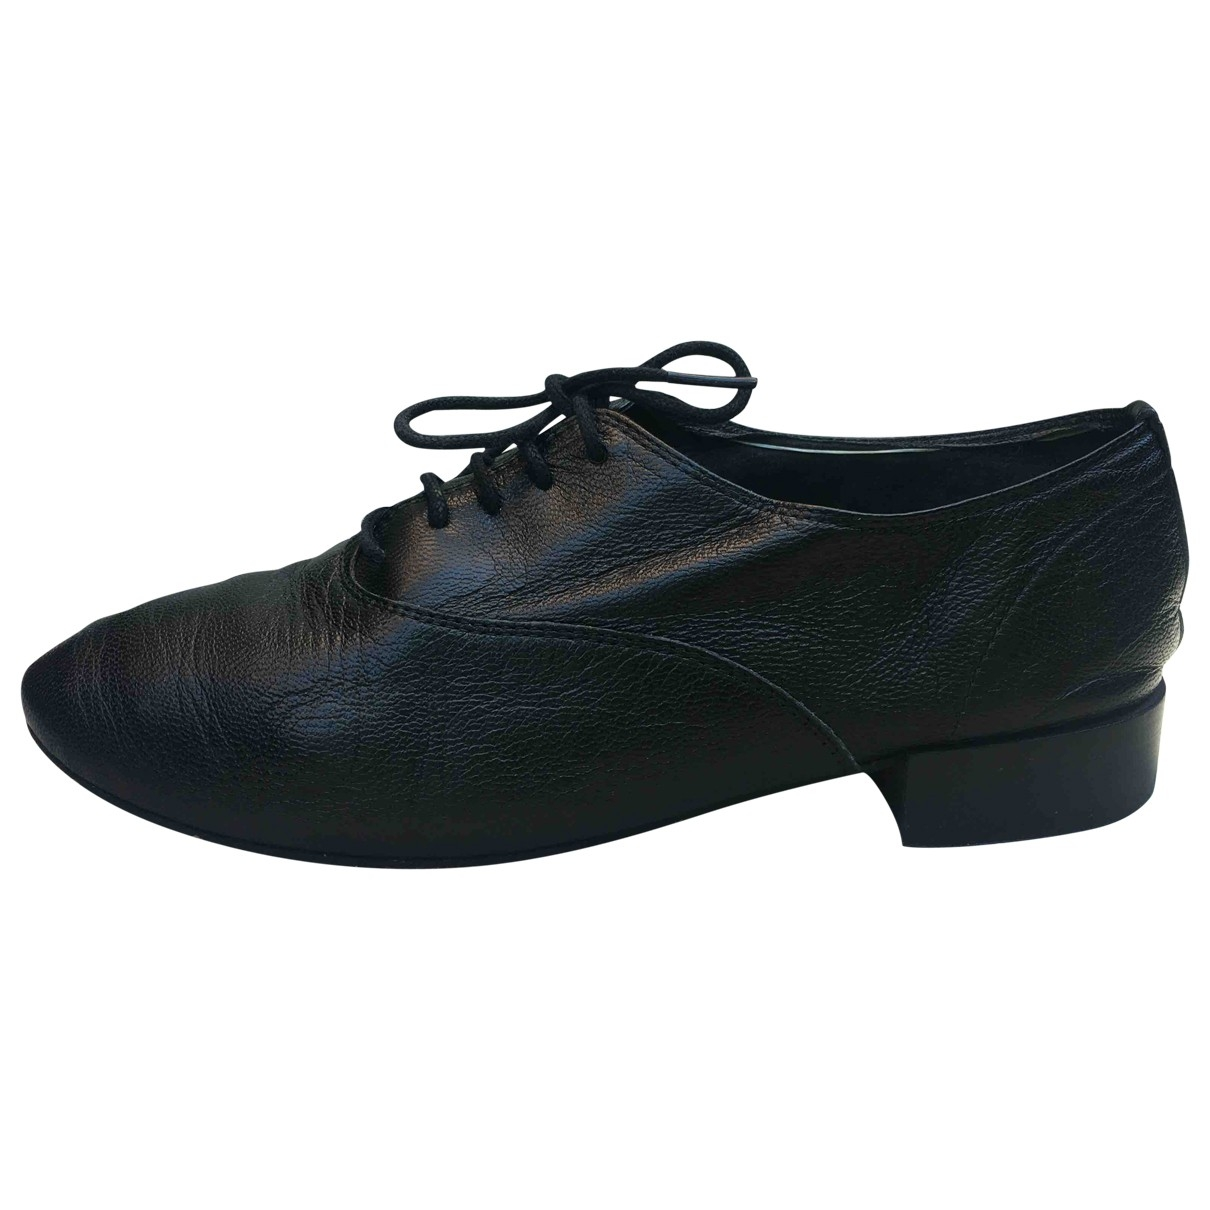 Repetto \N Black Leather Lace ups for Women 36 EU